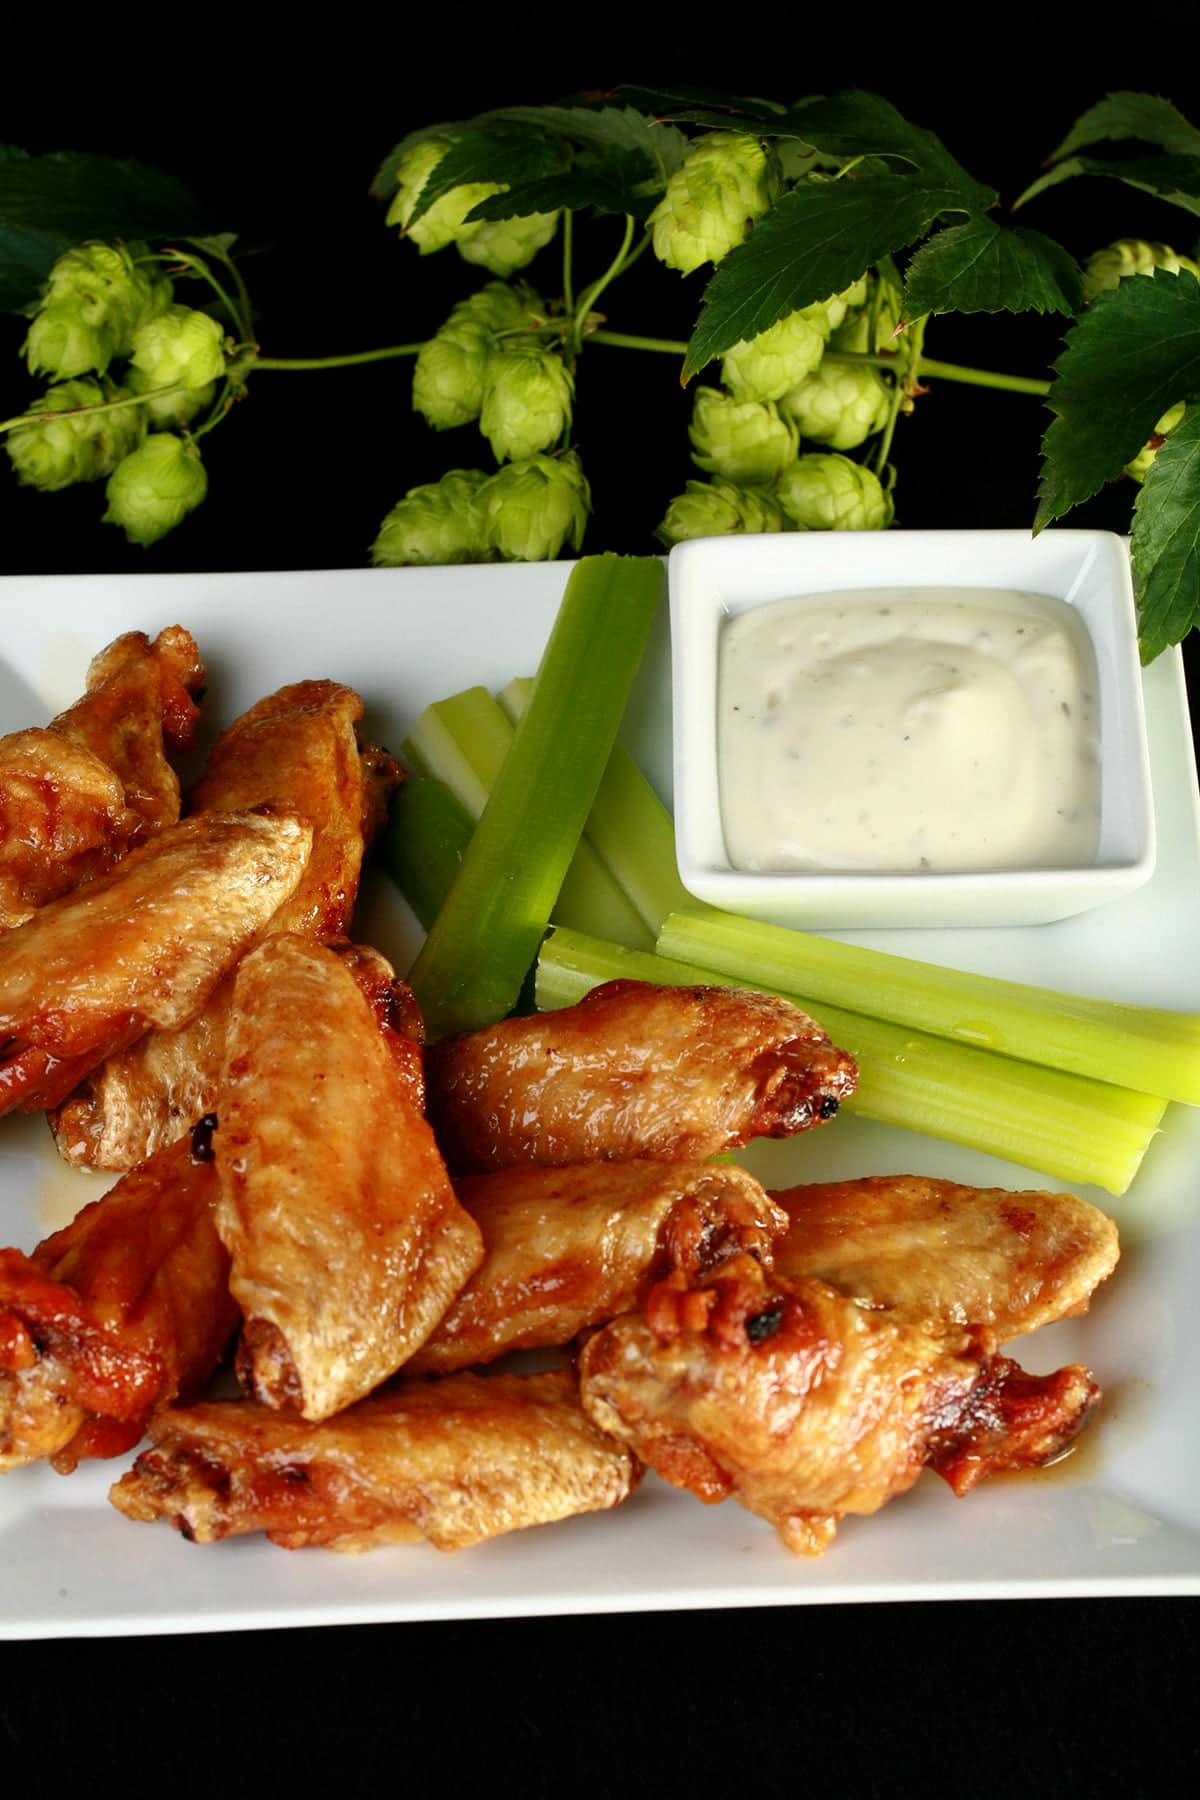 A plate of deep fried, Hoppy Citrus IPA Glazed Wings. They;re on a plate with celery sticks and a little bowl of ranch sauce, and the plate is surrounded by fresh hop bines.